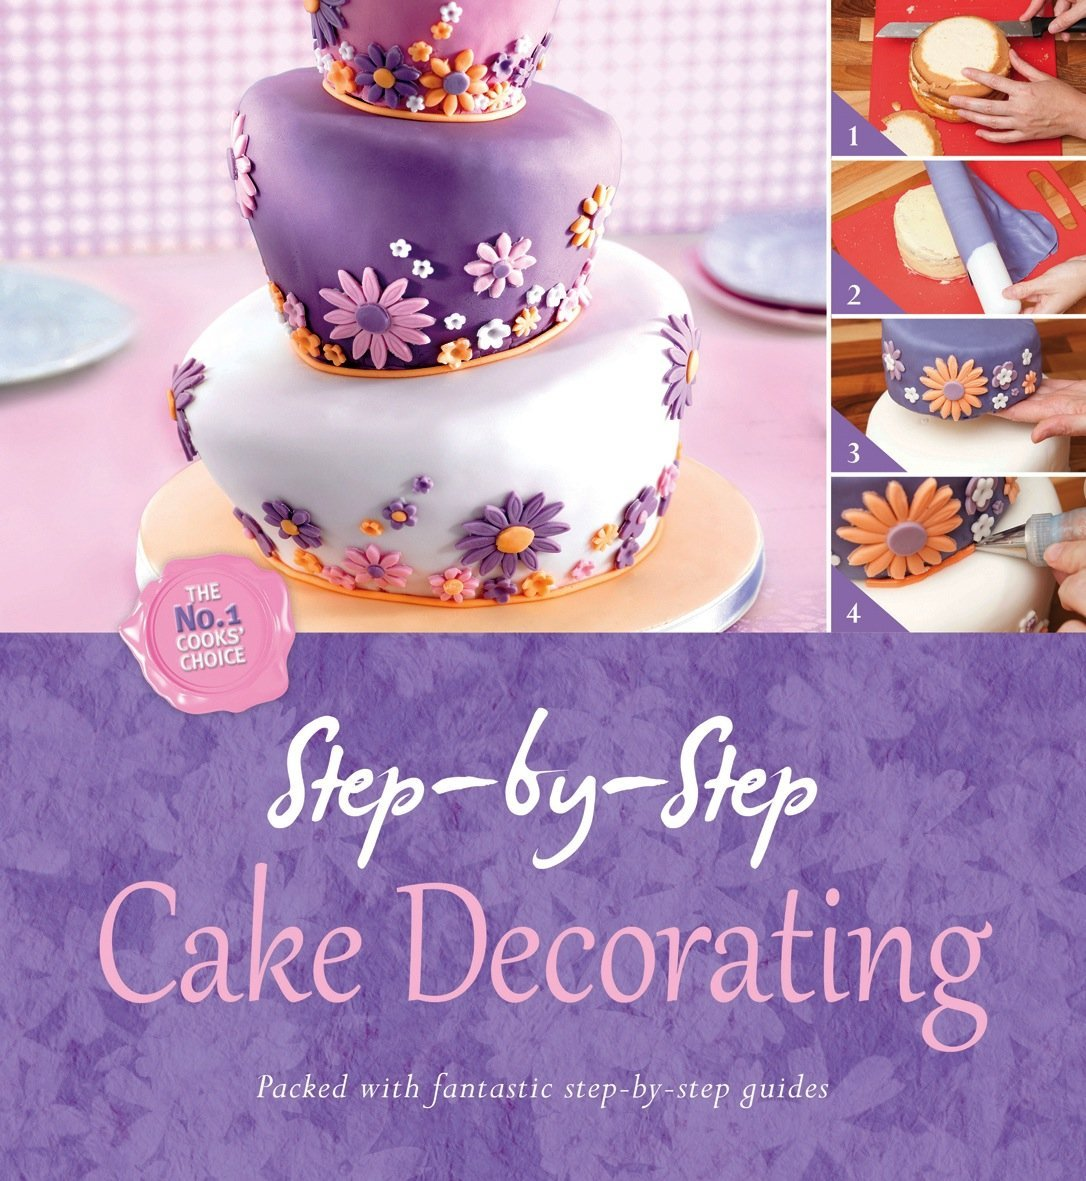 Cake Decorating Step By Step Images : Step-by-Step Cake Decorating by Igloo Books - Byrnes Online